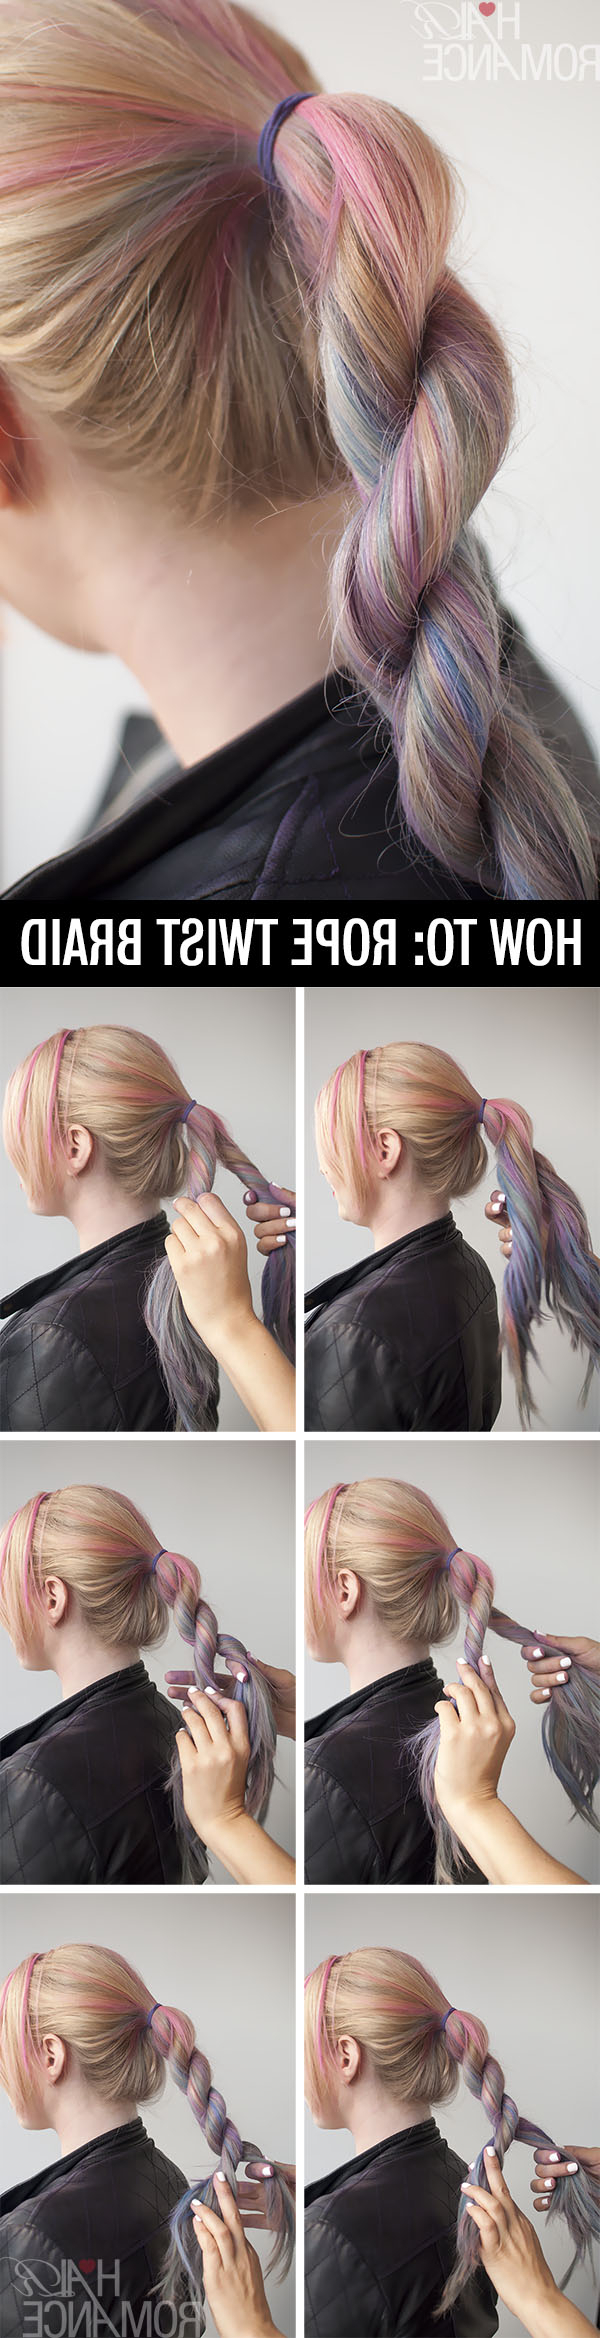 Hairstyle Tutorial – How To Do A Rope Twist Braid – Hair Romance With Regard To Fashionable Intricate Rope Braid Ponytail Hairstyles (Gallery 19 of 20)